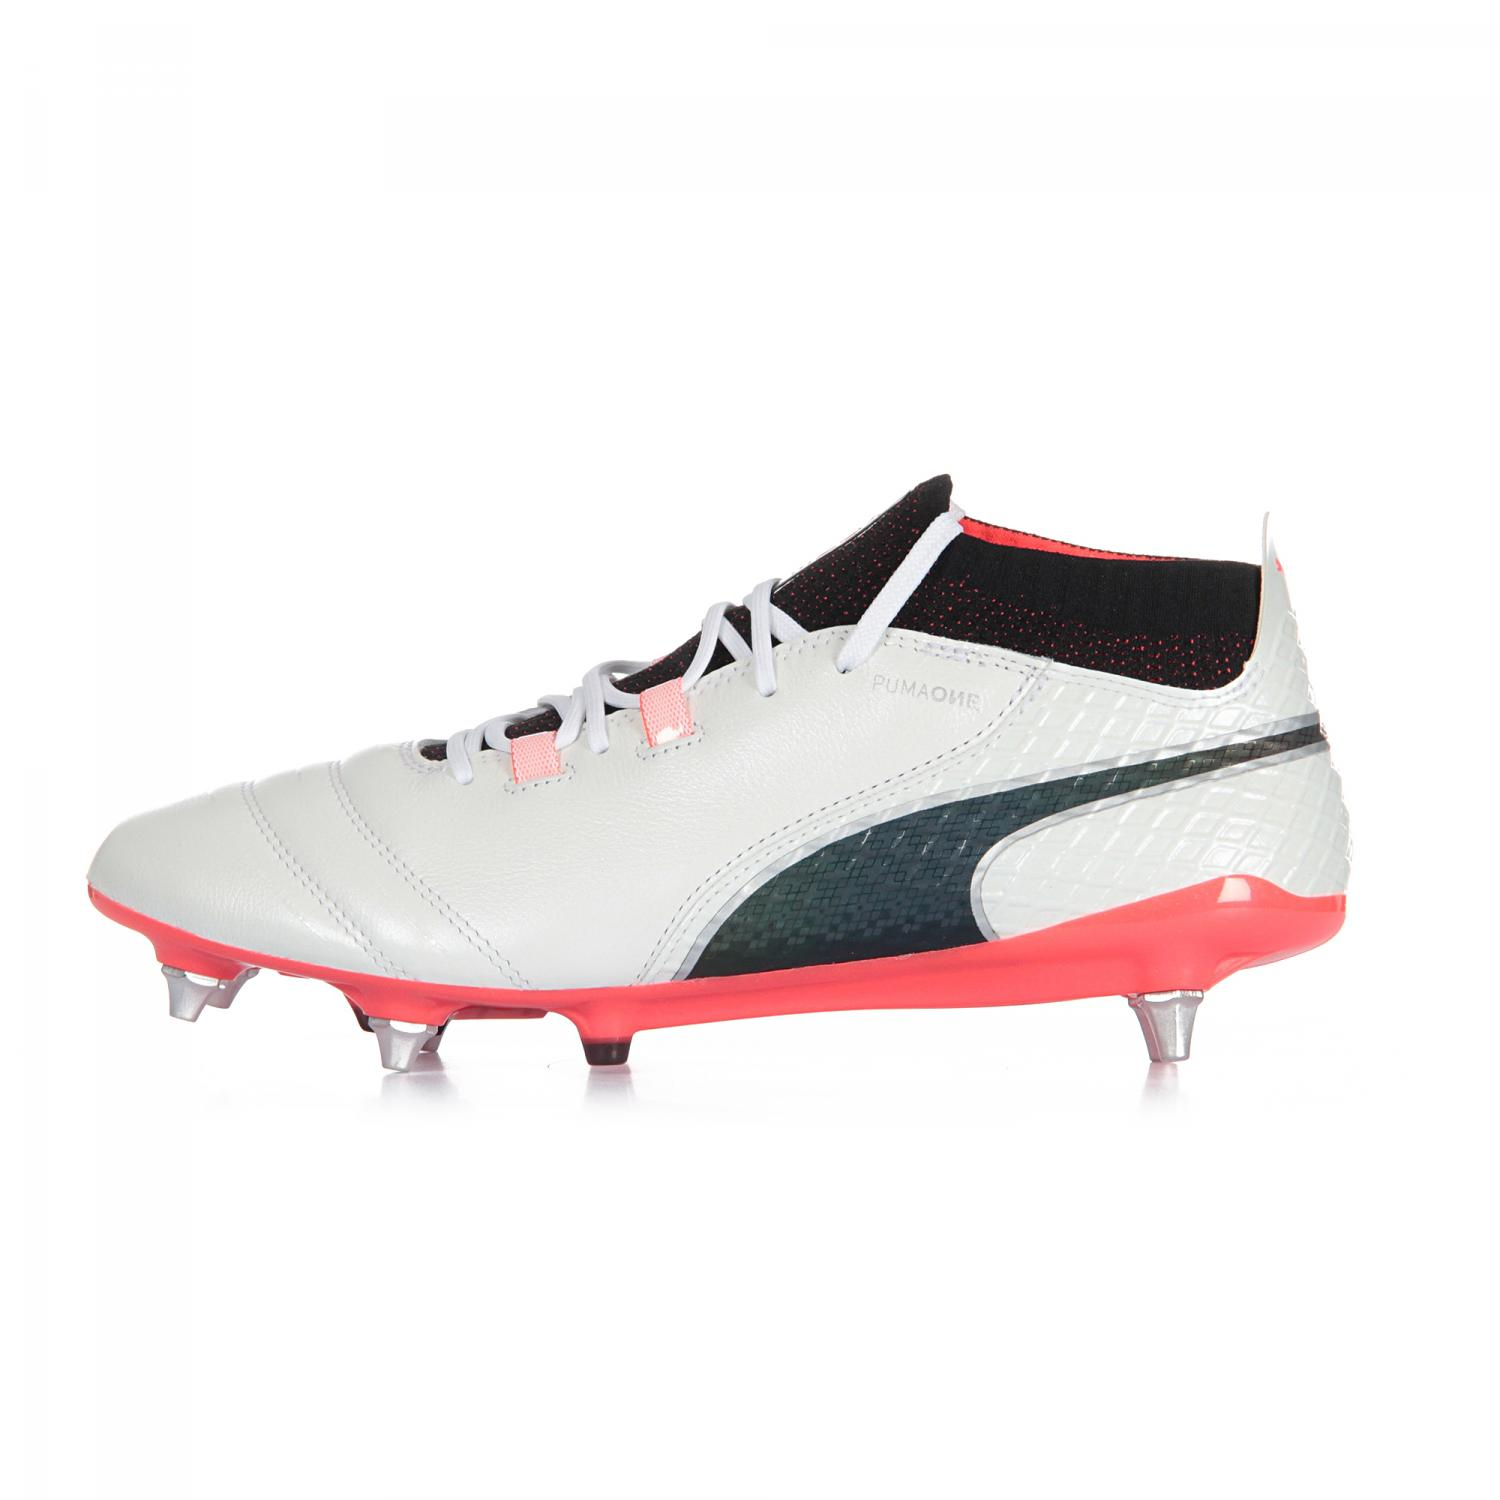 Puma One 17.1 Mx Sg Shoes